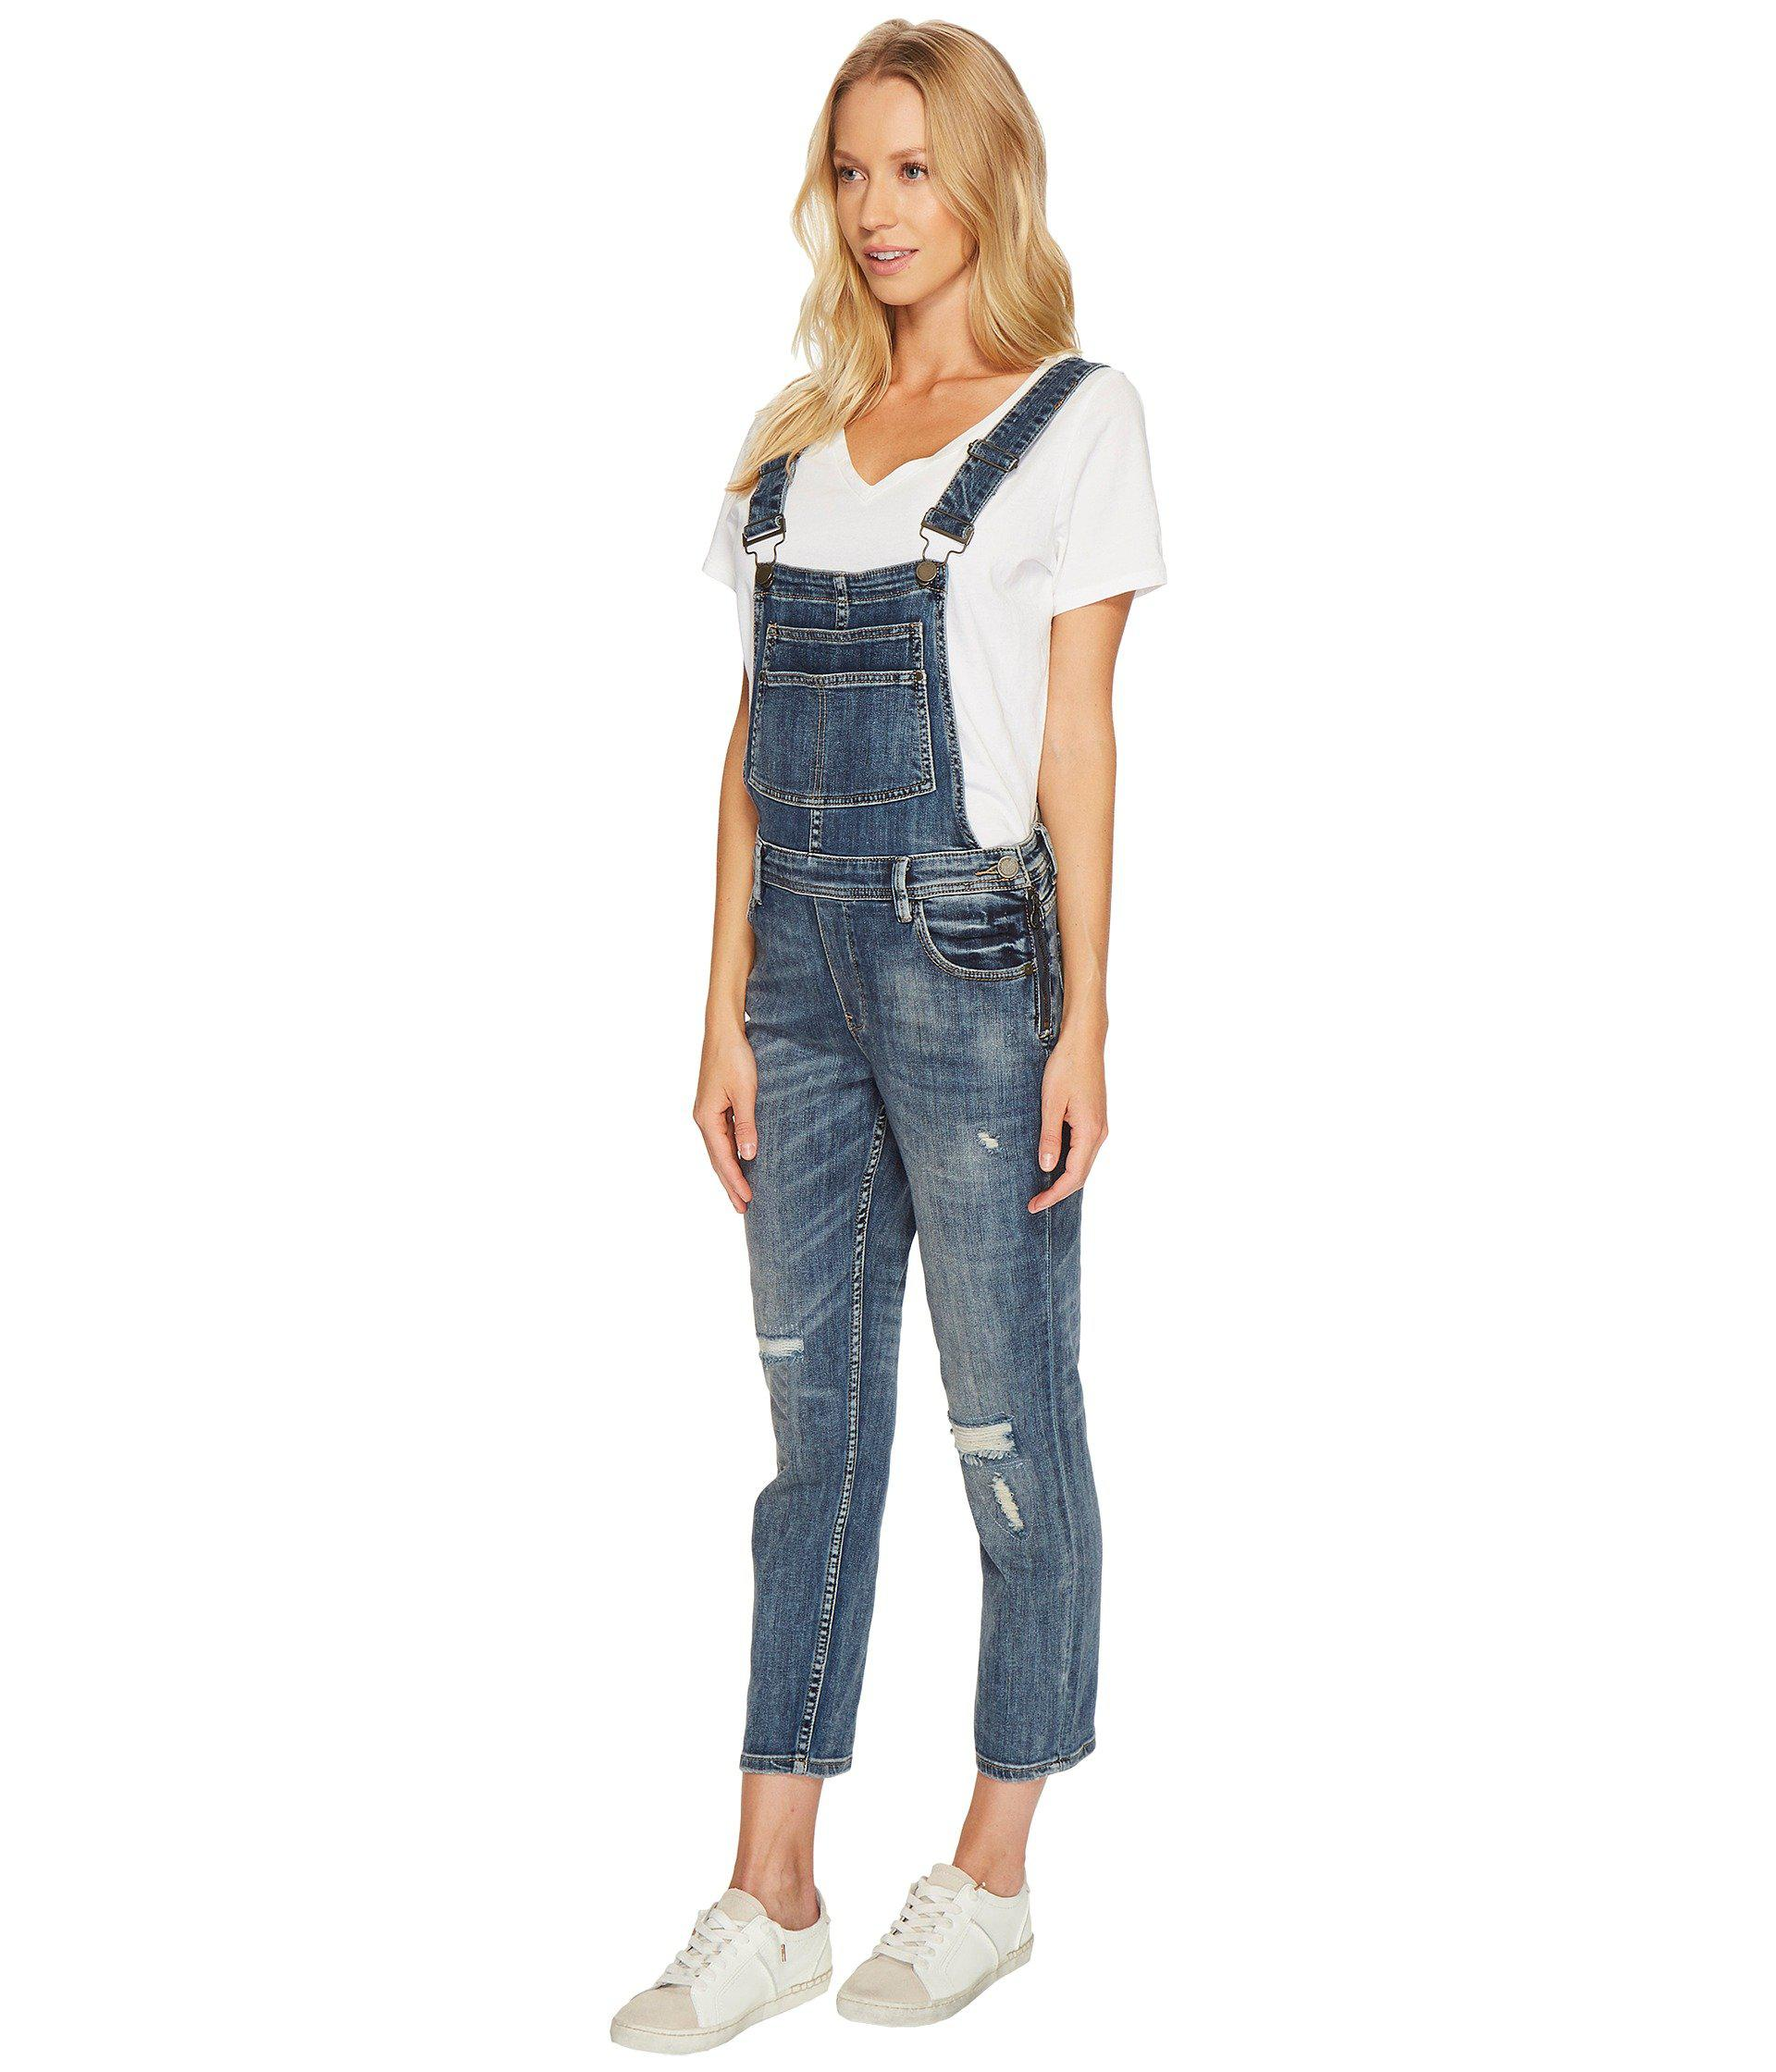 498f9d98431e Gallery. Previously sold at  Zappos · Women s Denim Overalls ...